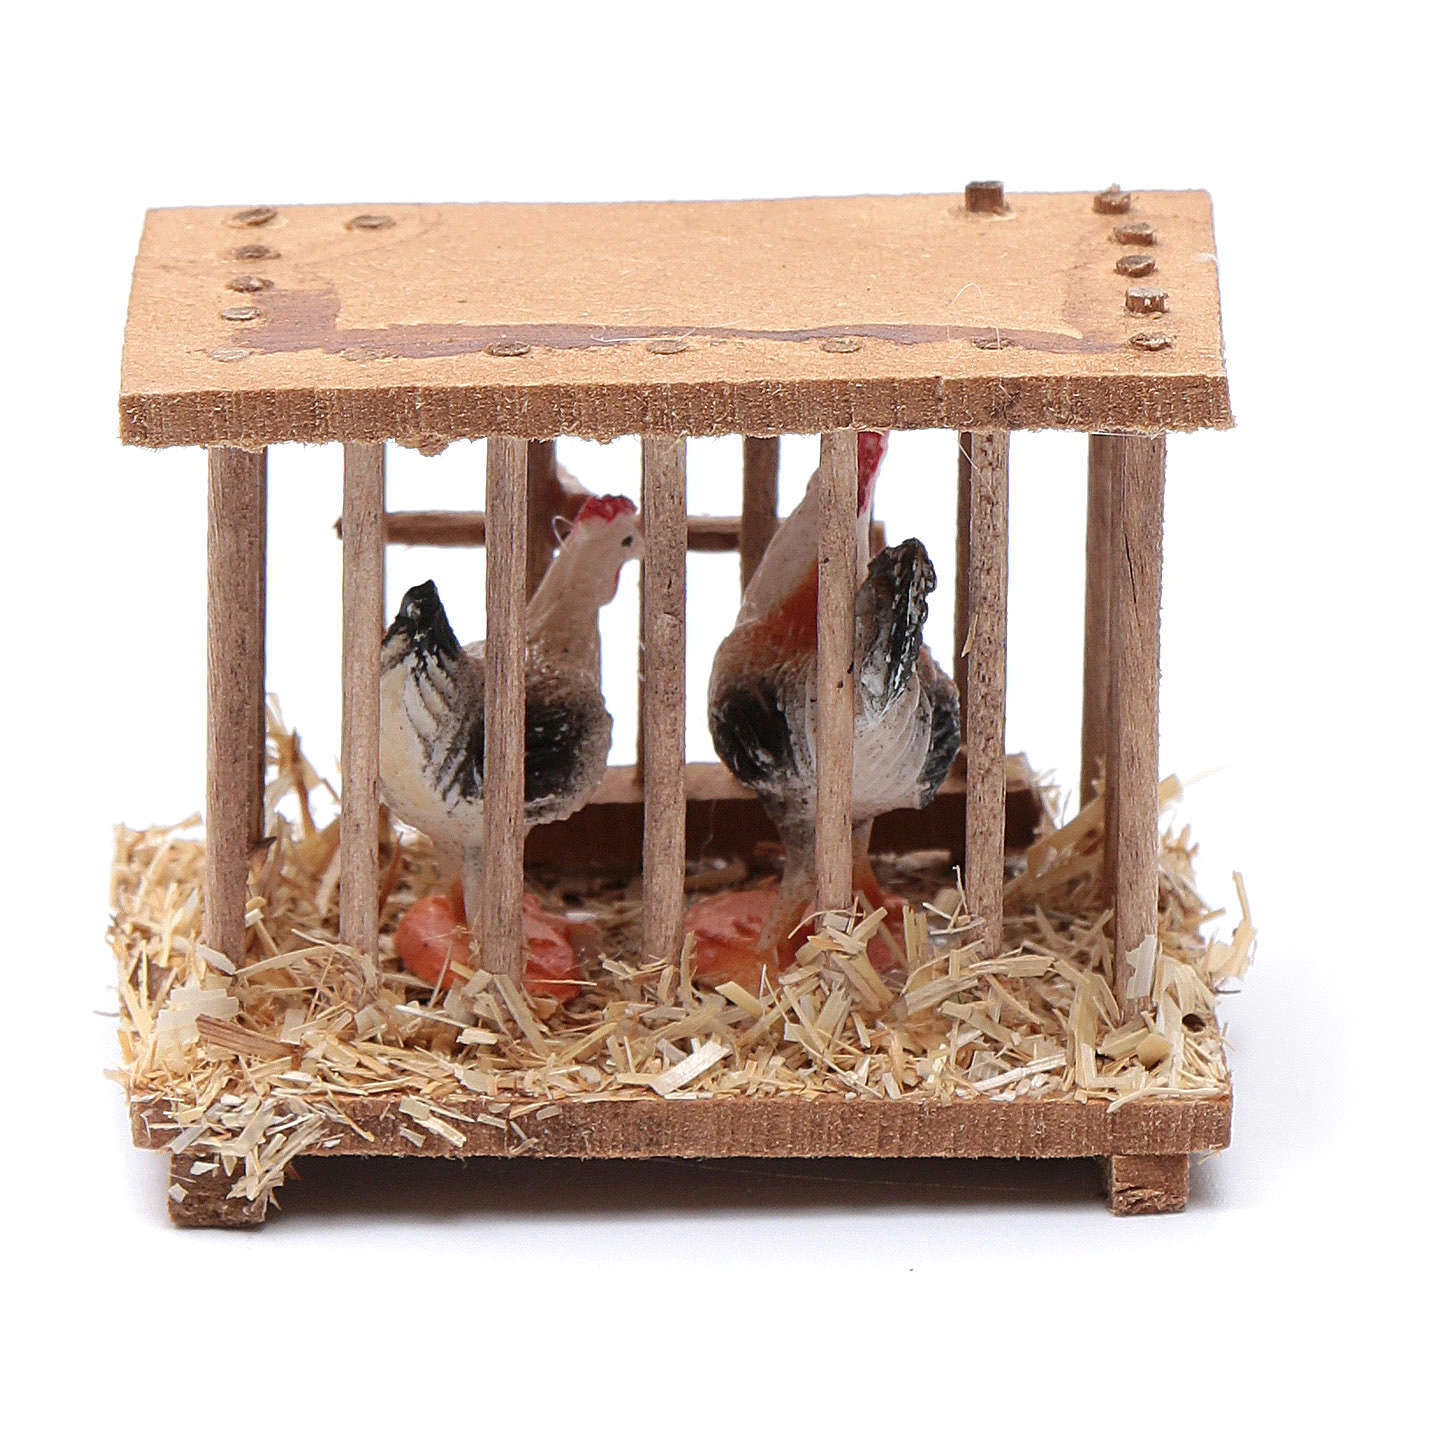 Nativity scene wooden cage 5x5x3 cm 4